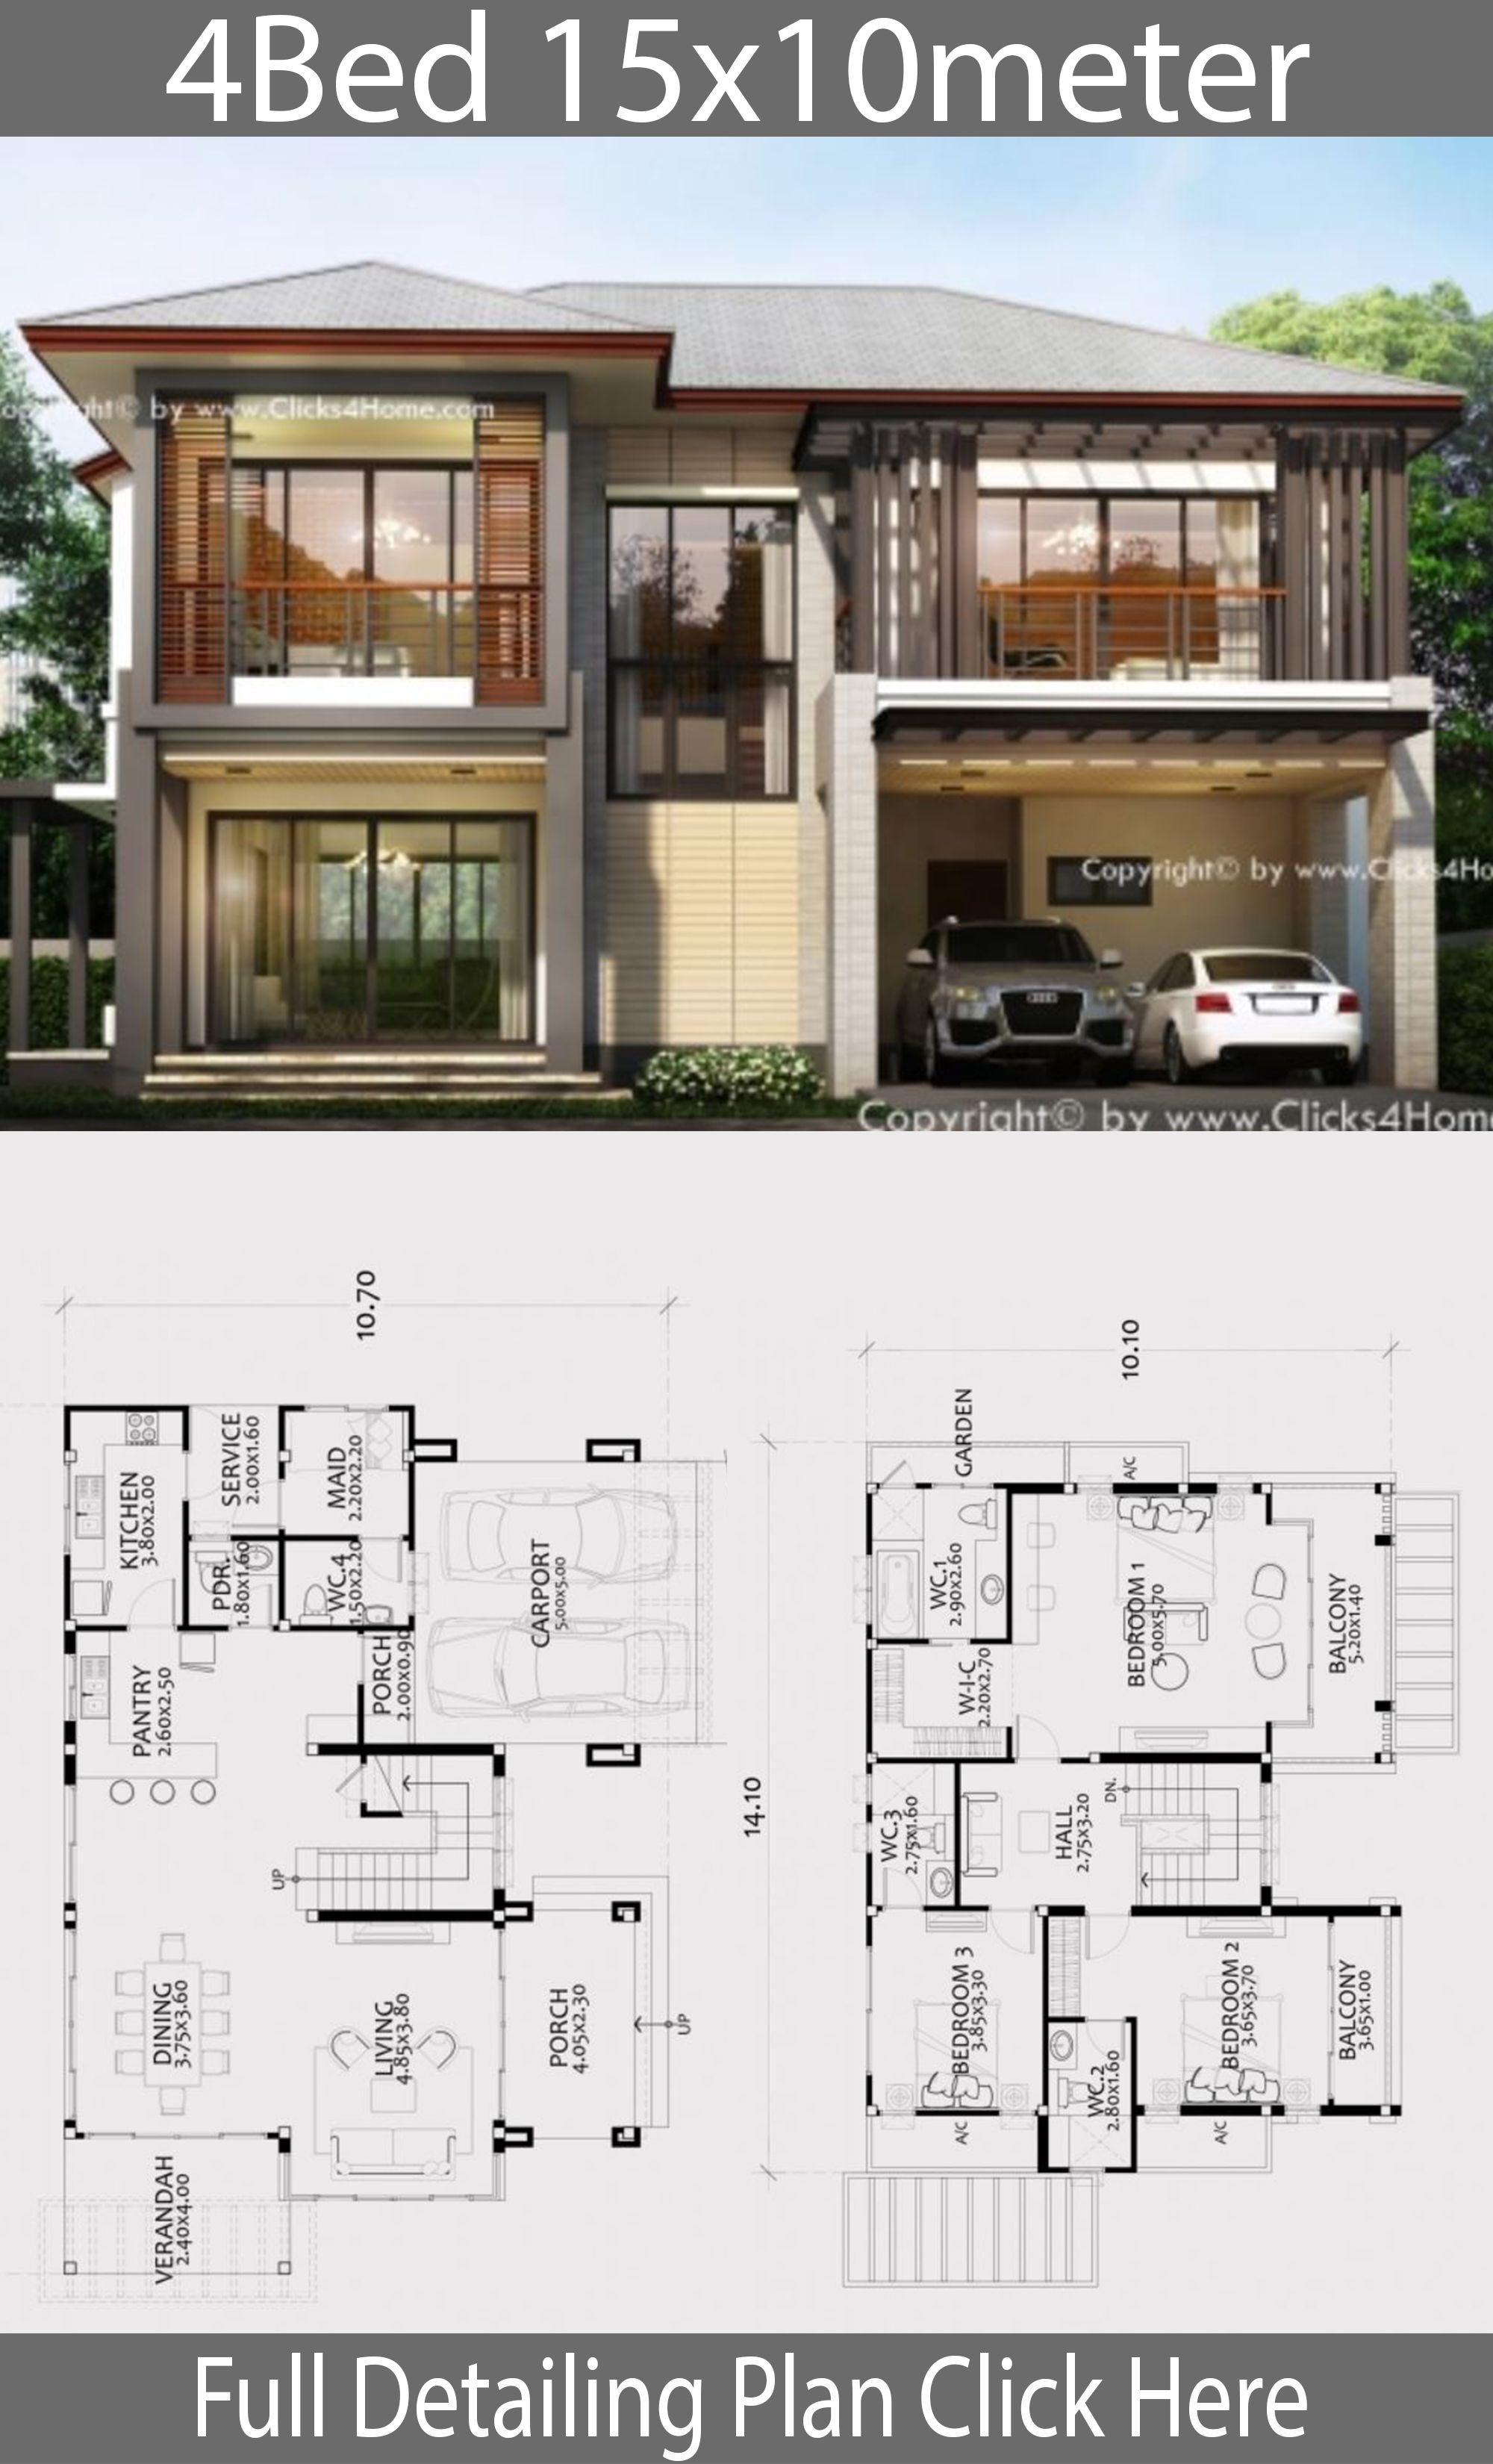 Home Design Plan 15x10m With 4 Bedroom House Idea Architectural House Plans Home Design Floor Plans Model House Plan